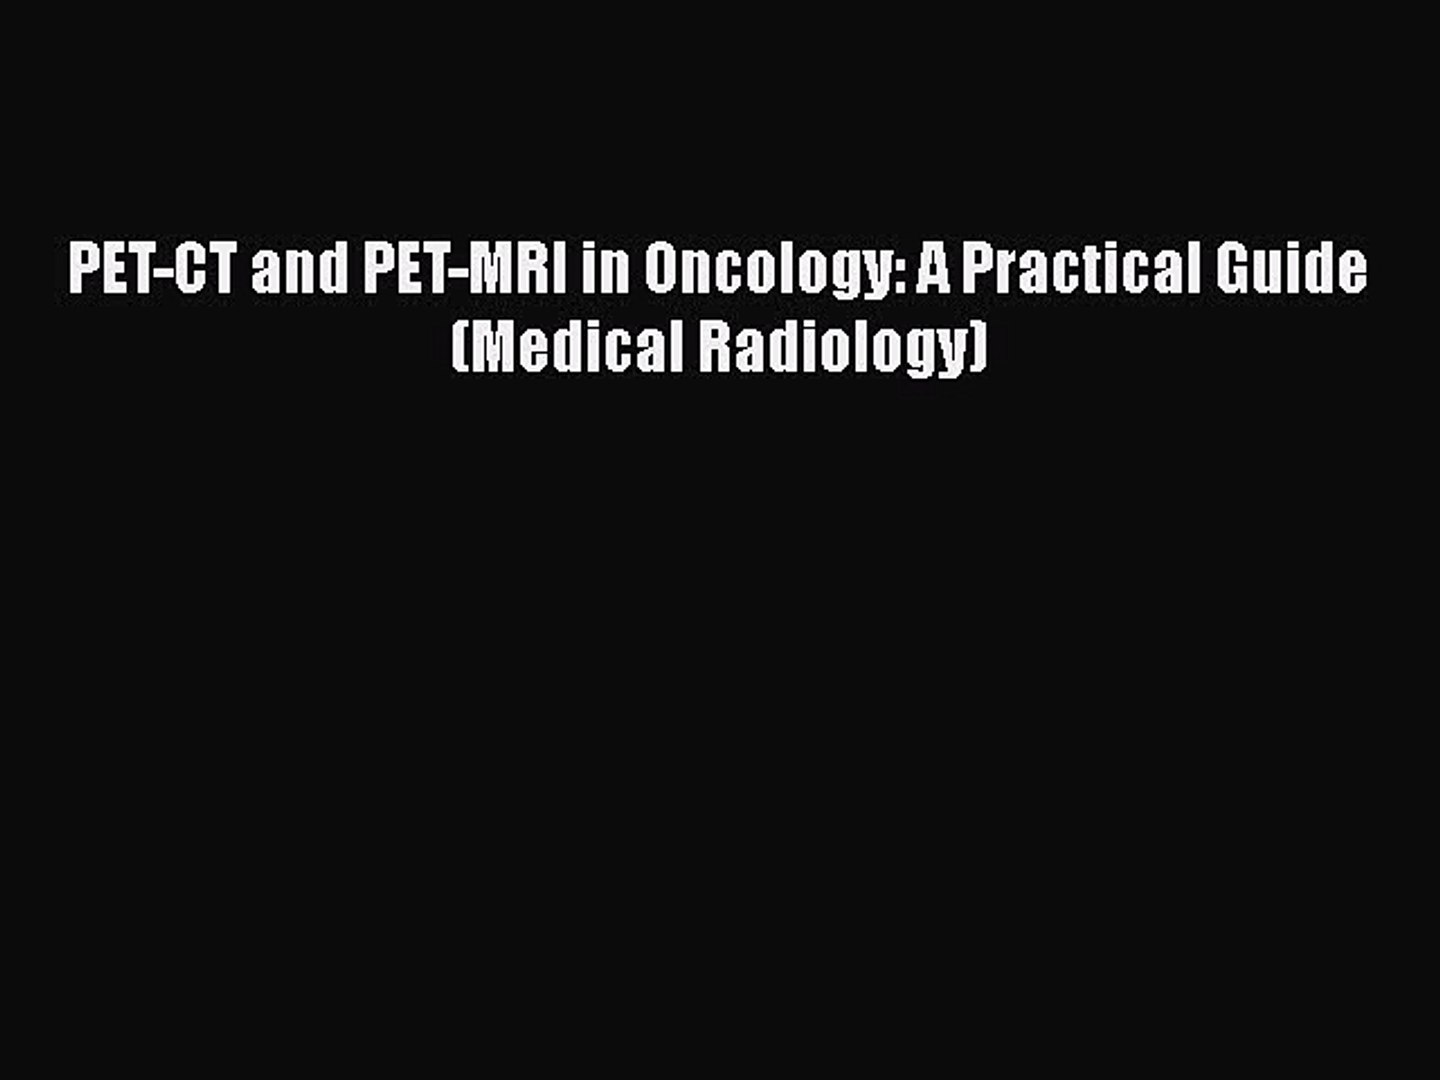 Download Book PET-CT and PET-MRI in Oncology: A Practical Guide (Medical Radiology) PDF Online